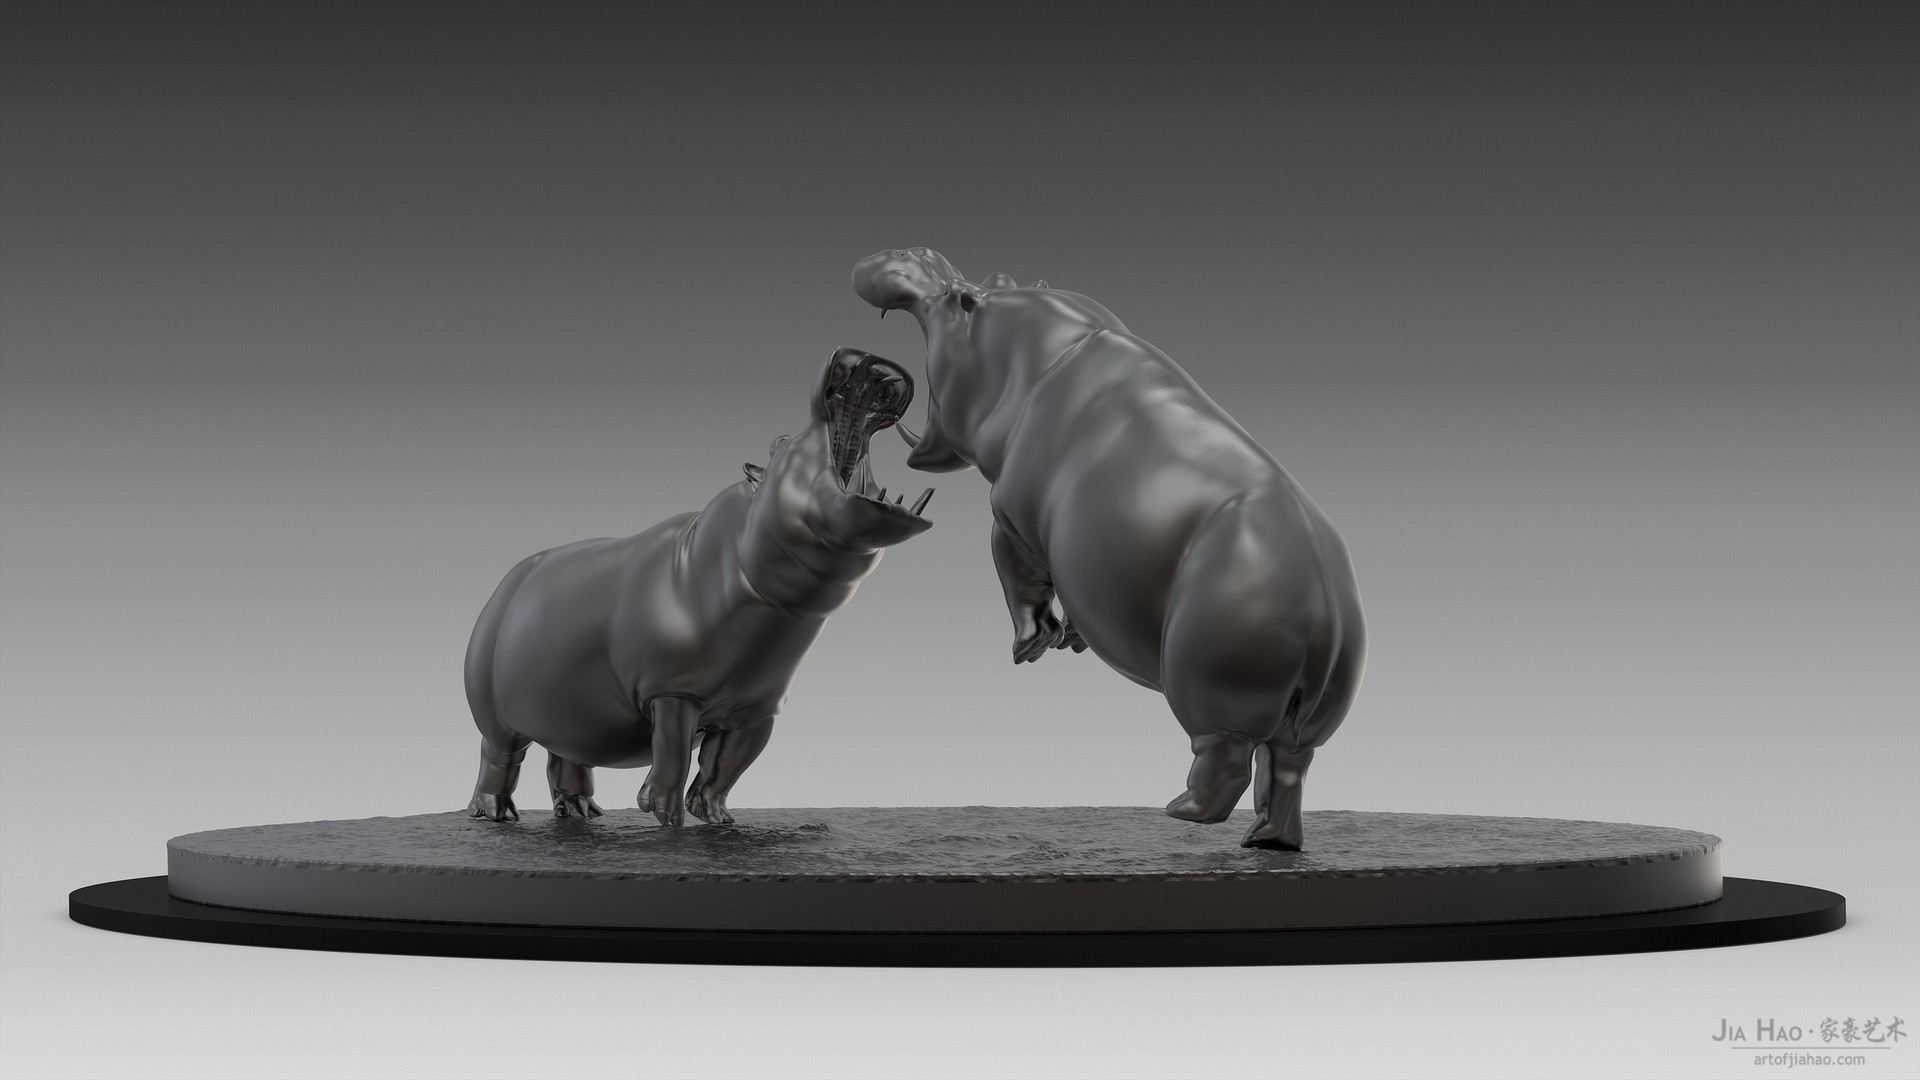 Jia hao hippo digitalsculptureb 04